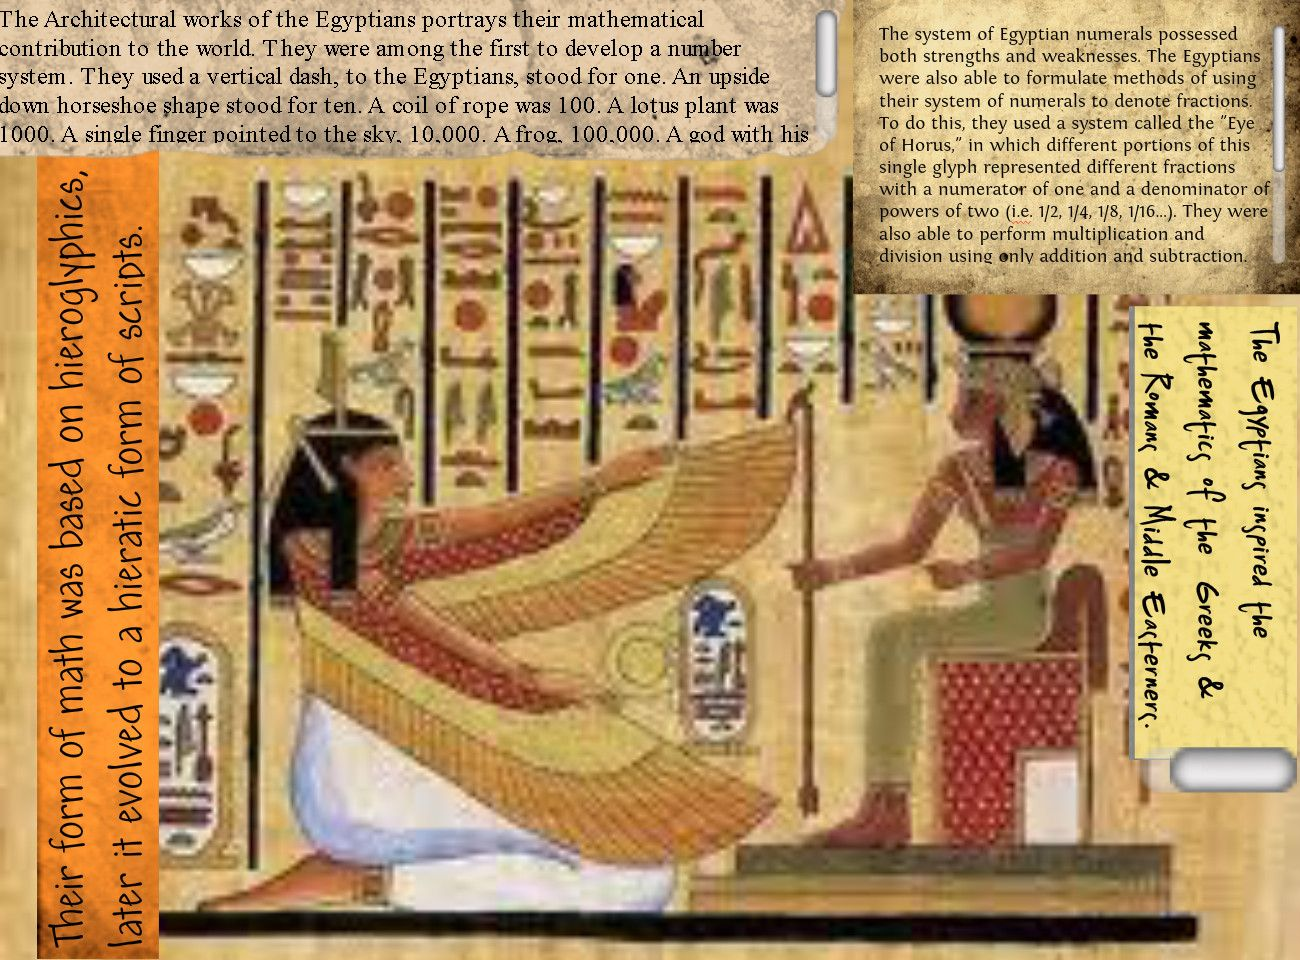 The color red scarlet letter project publish with glogster - Ancient Mathmatics Mathematics Of Ancient Egypt Publish With Glogster